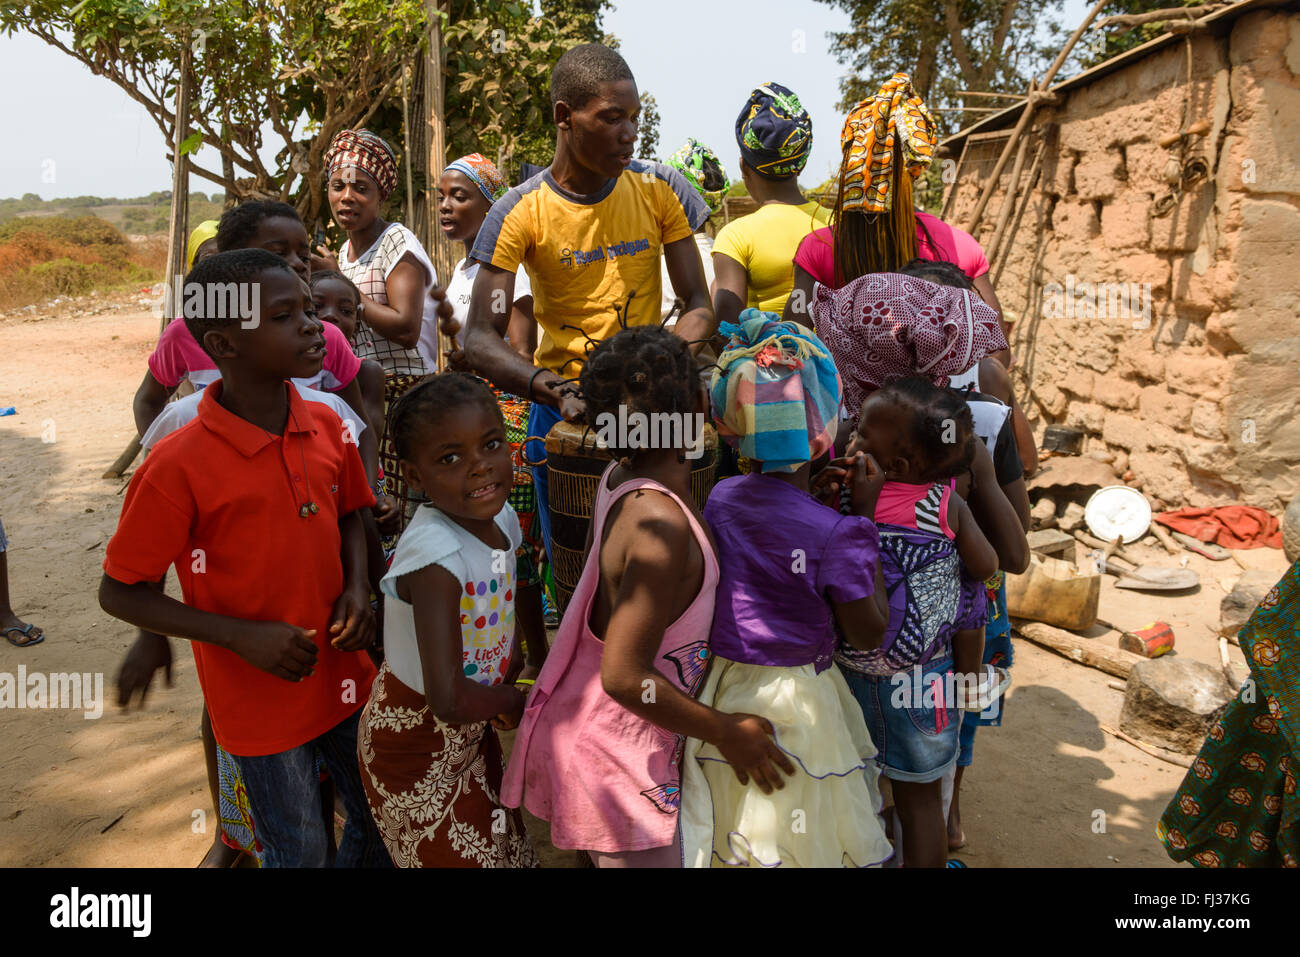 Celebration dance for a baptism, Angola, Africa - Stock Image